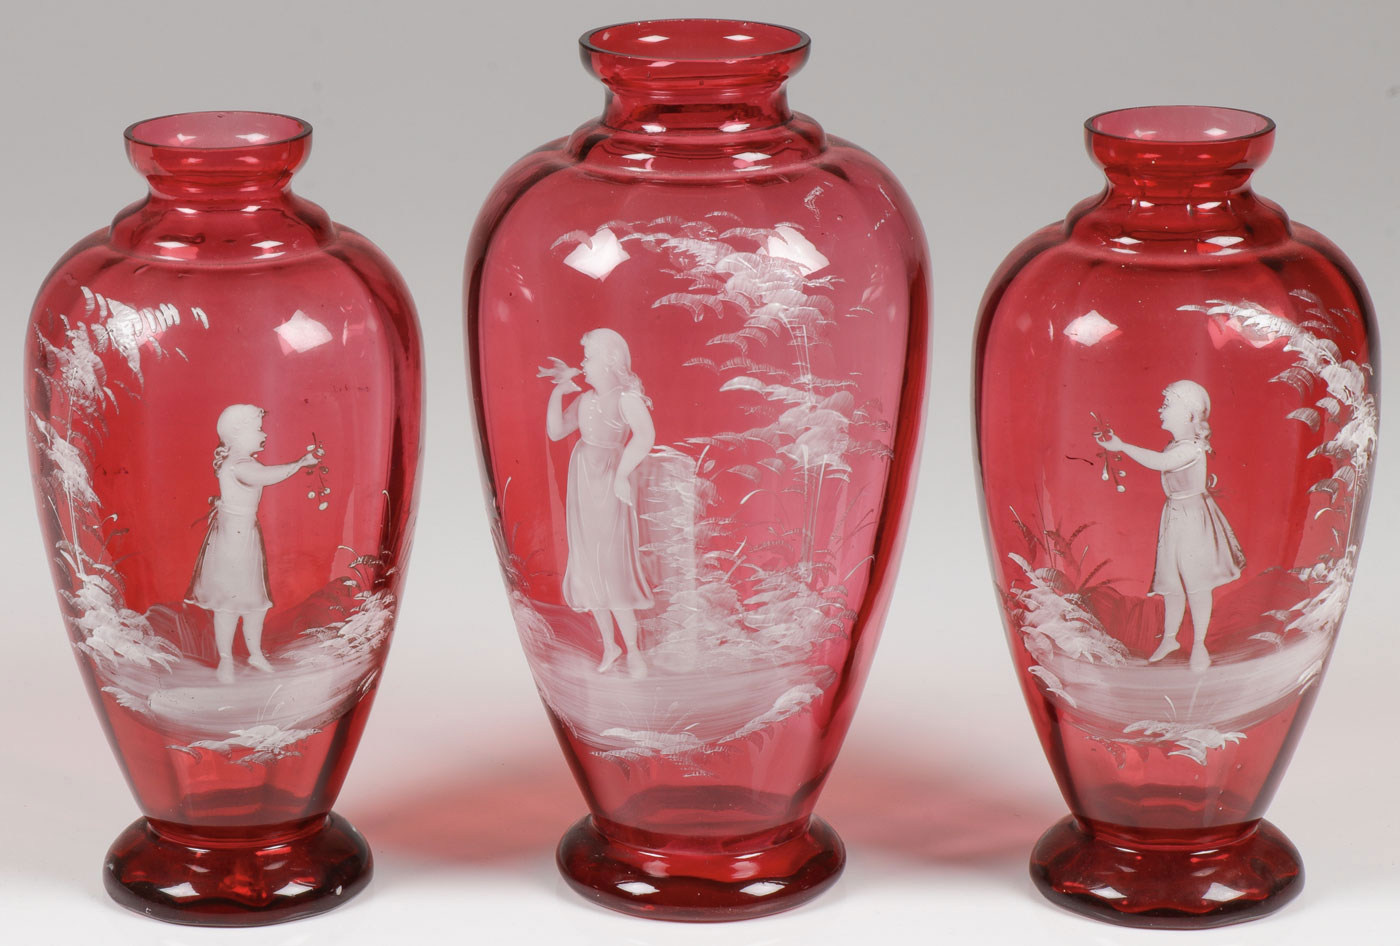 Lot 58 - THREE MARY GREGORY CRANBERRY VASES